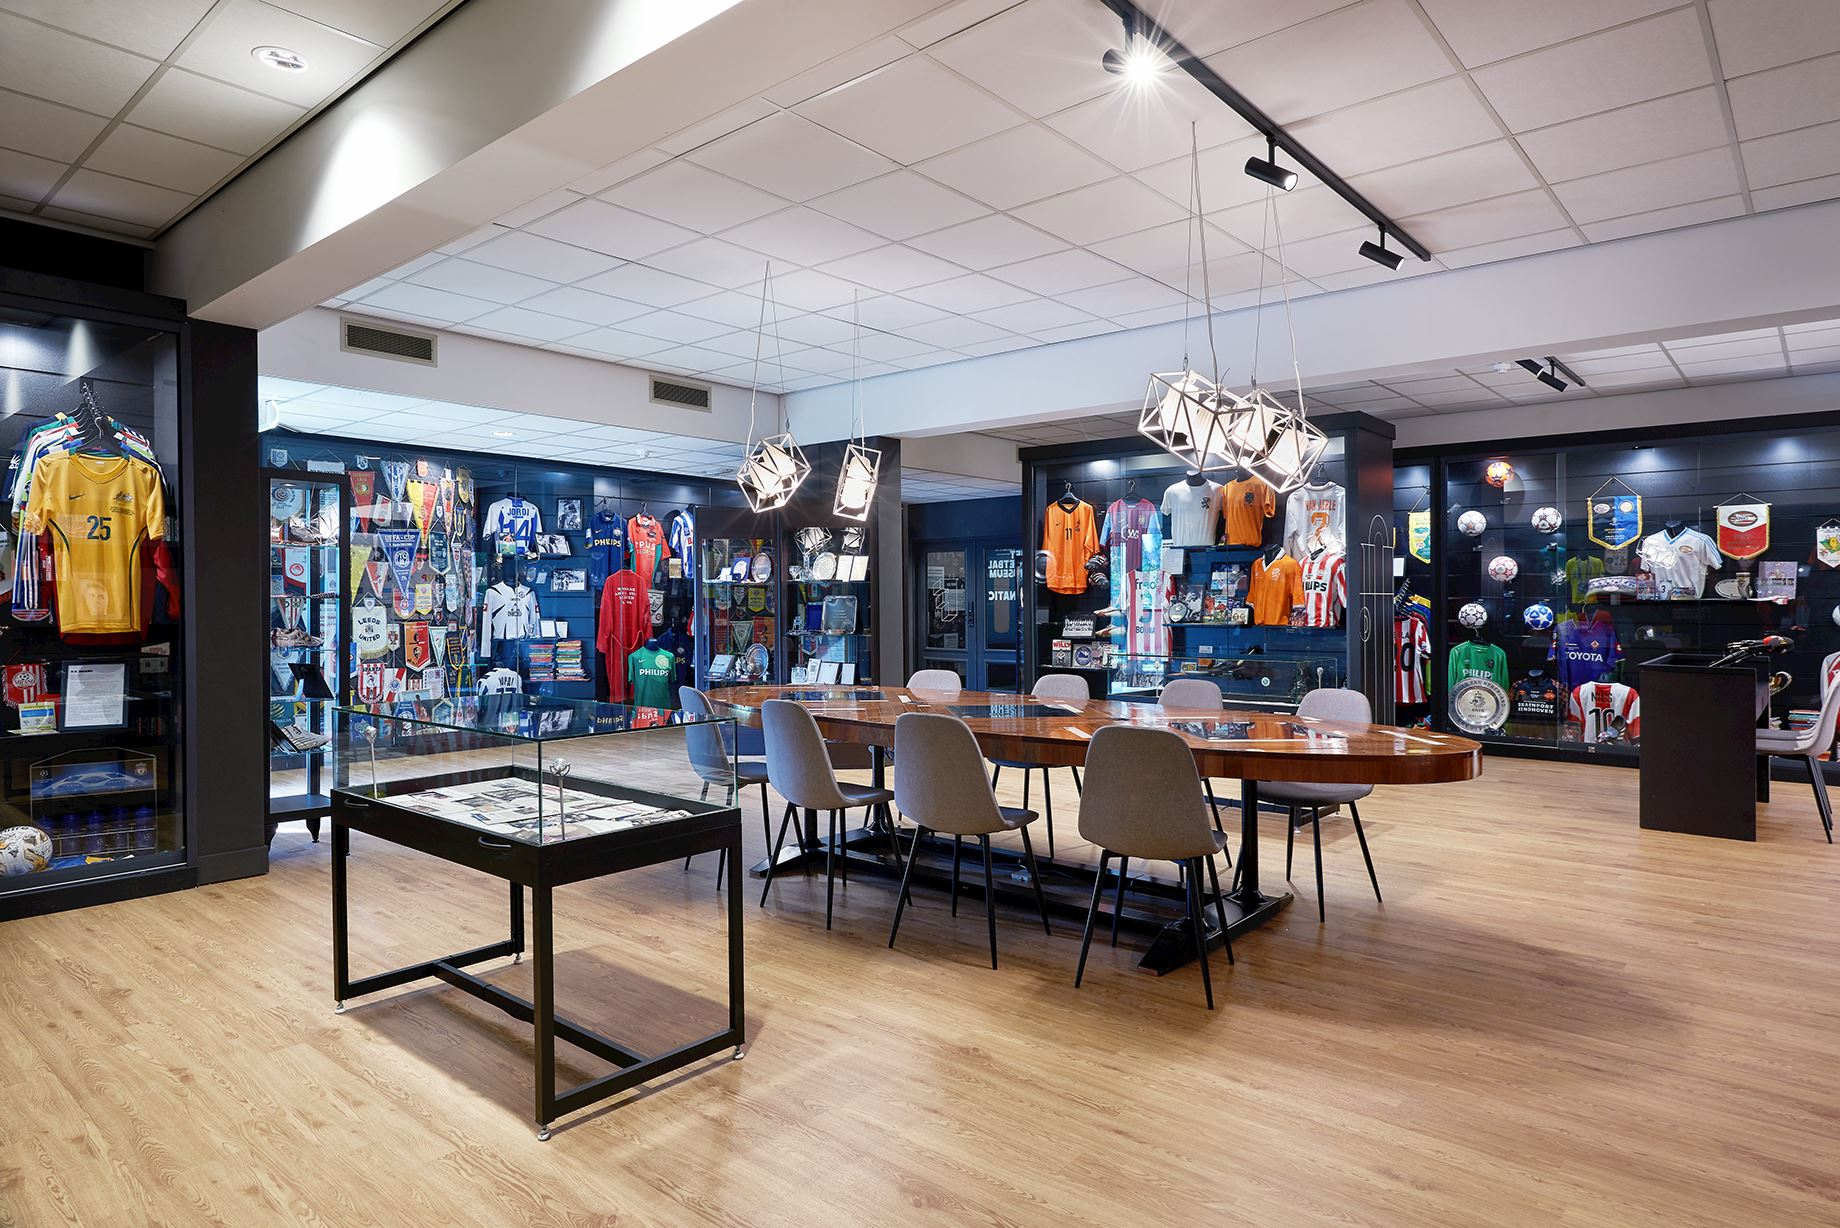 hup-hotel-sport-mierlo-voetbal-sport-museum-fanatic